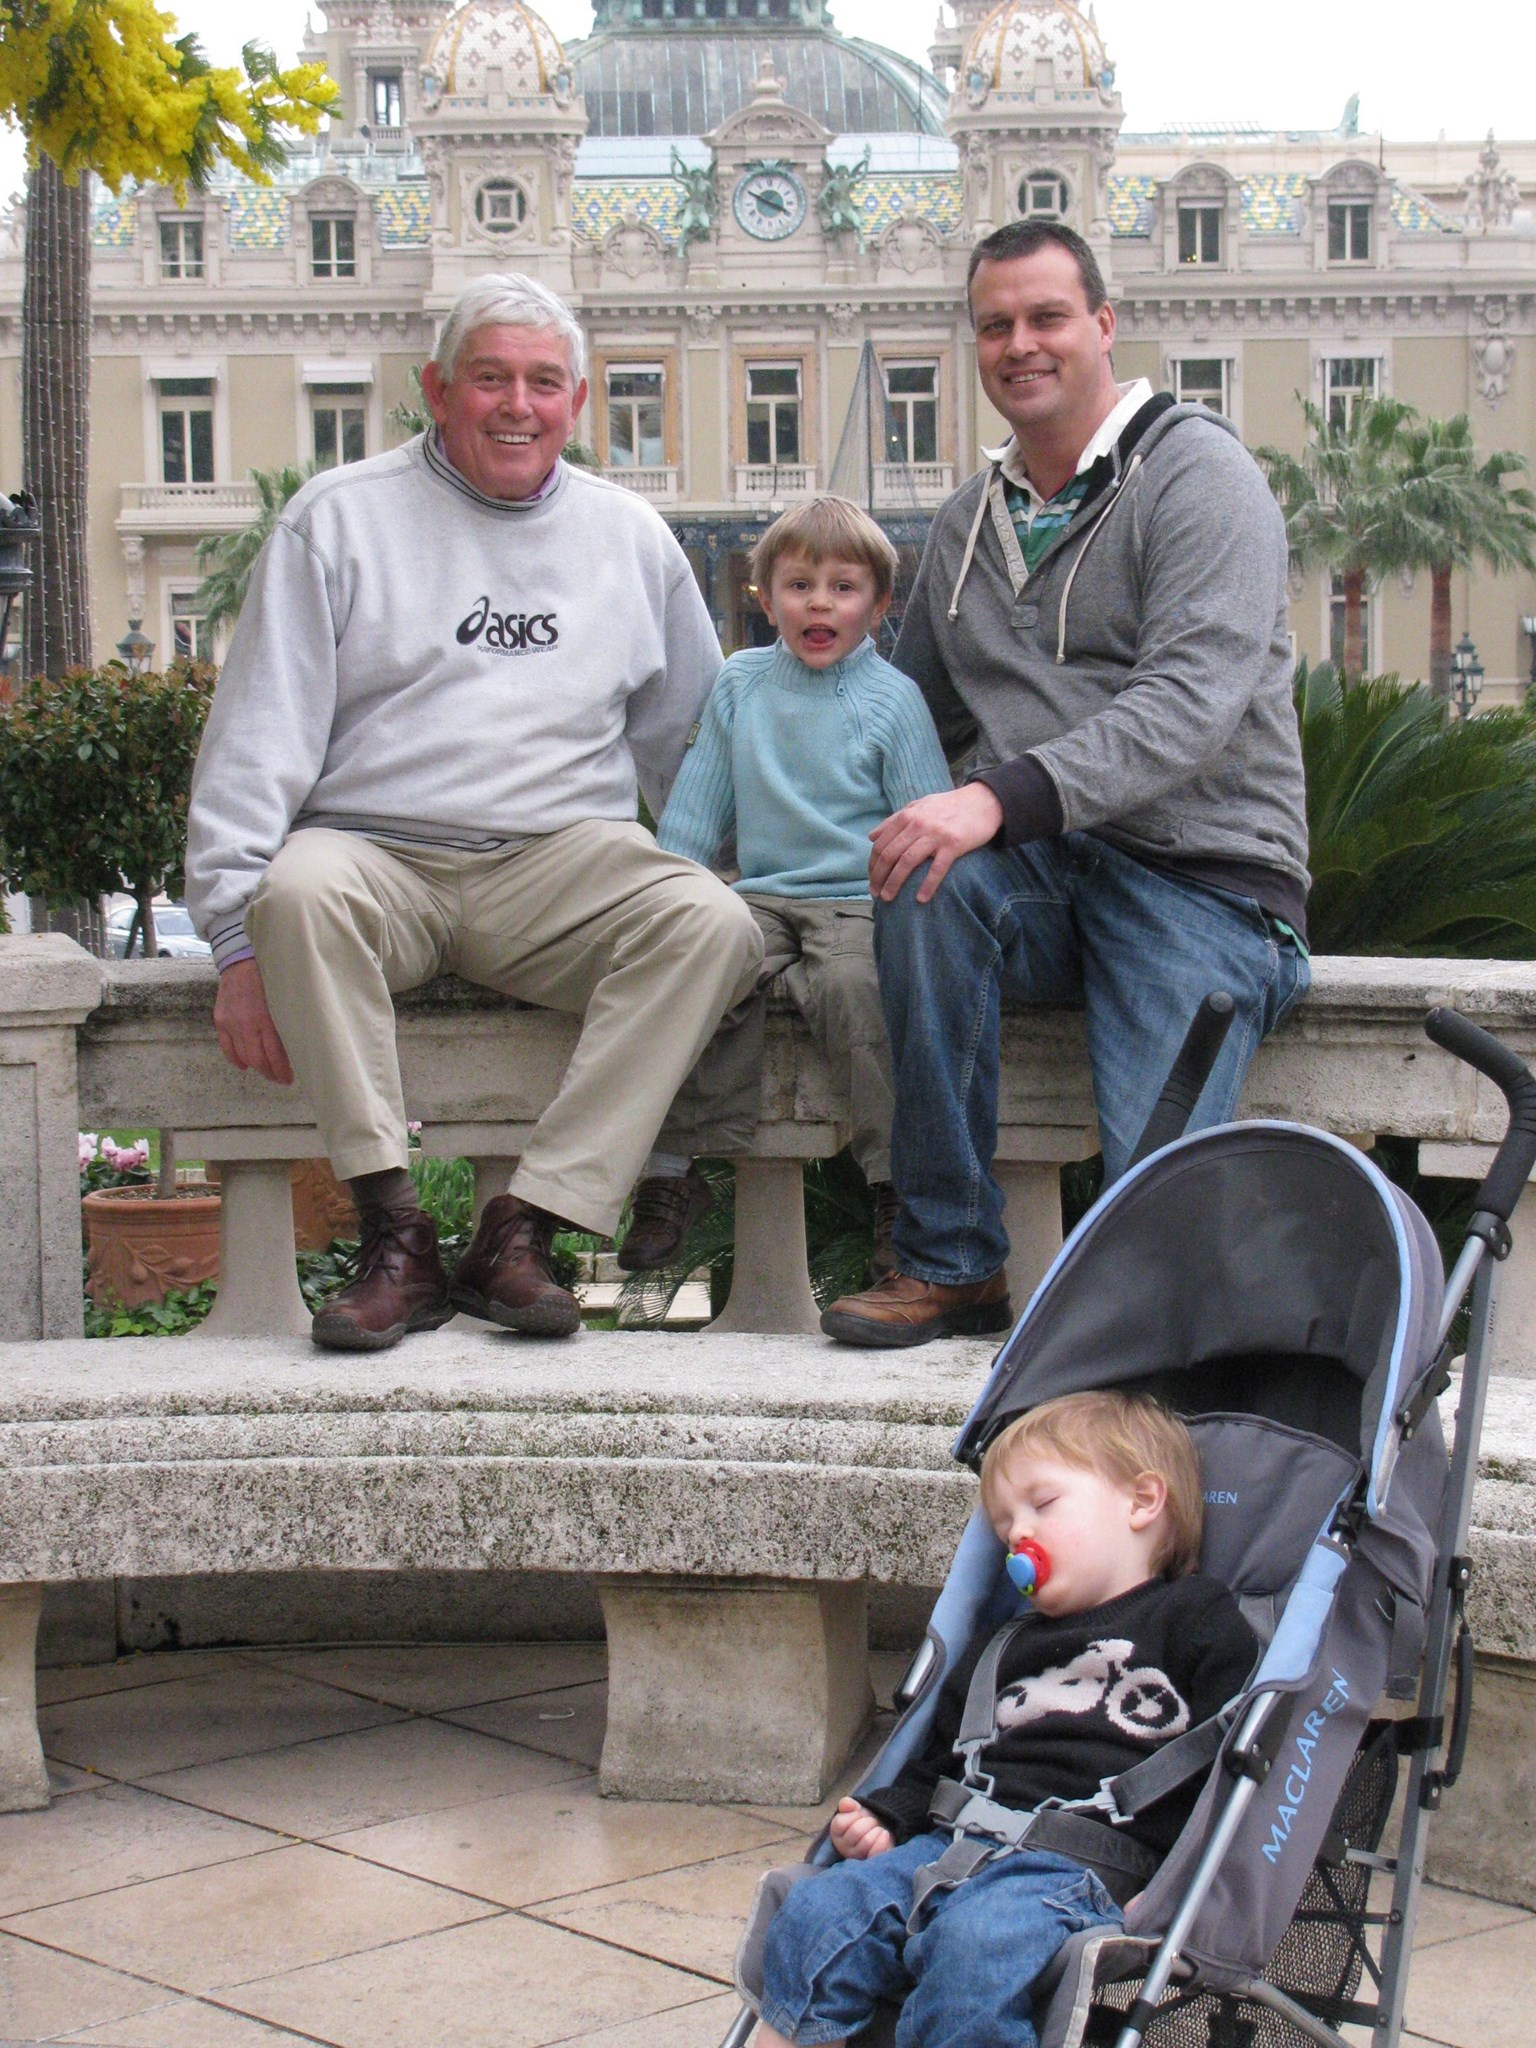 Tony, Paul, Stanley and Albert in front of the Monte Carlo casino - February 2011